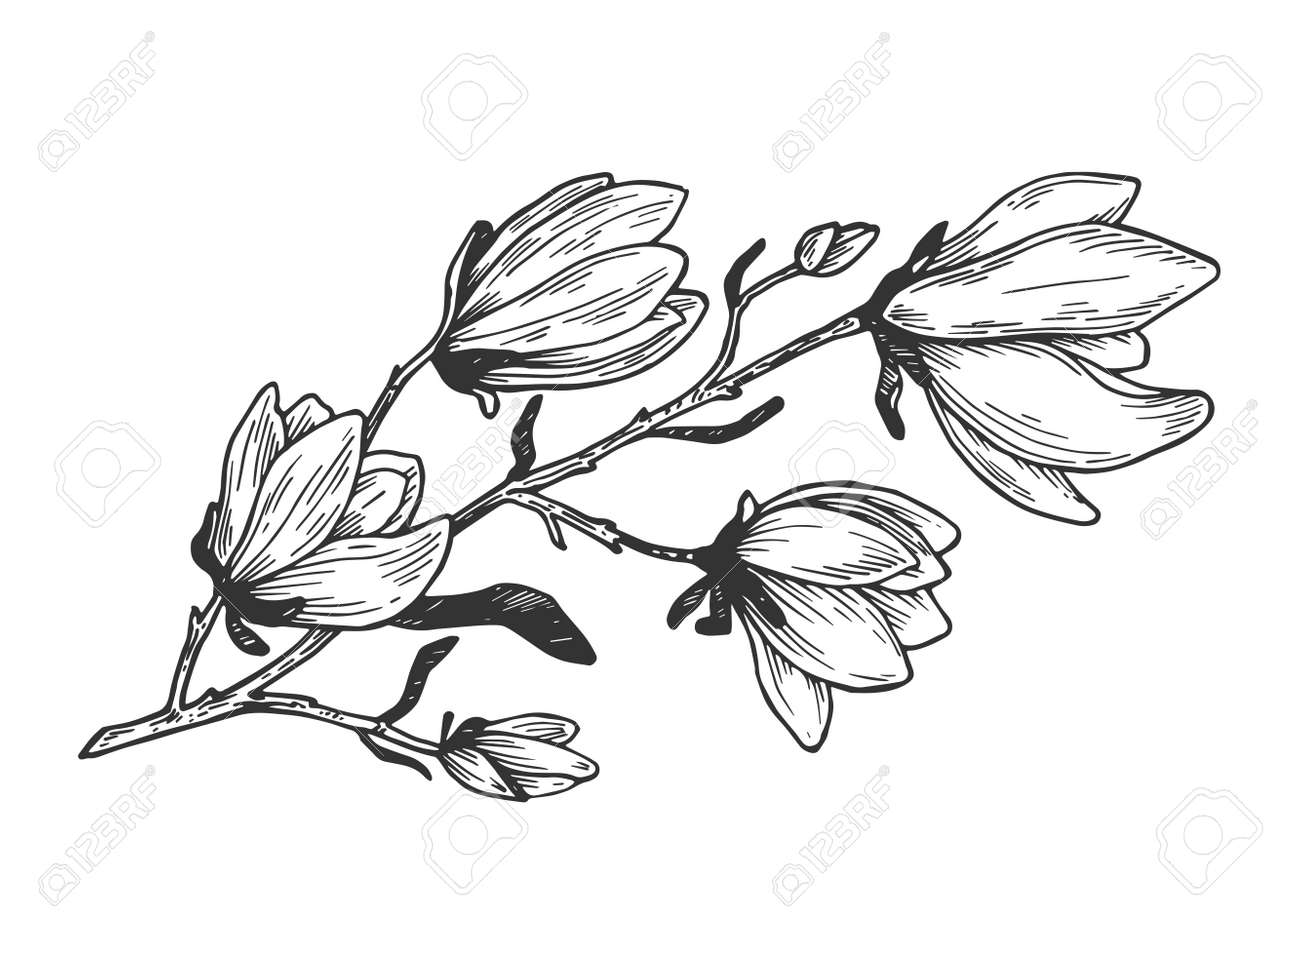 Magnolia branch engraving vector illustration. Scratch board style imitation. Hand drawn image. - 105267447